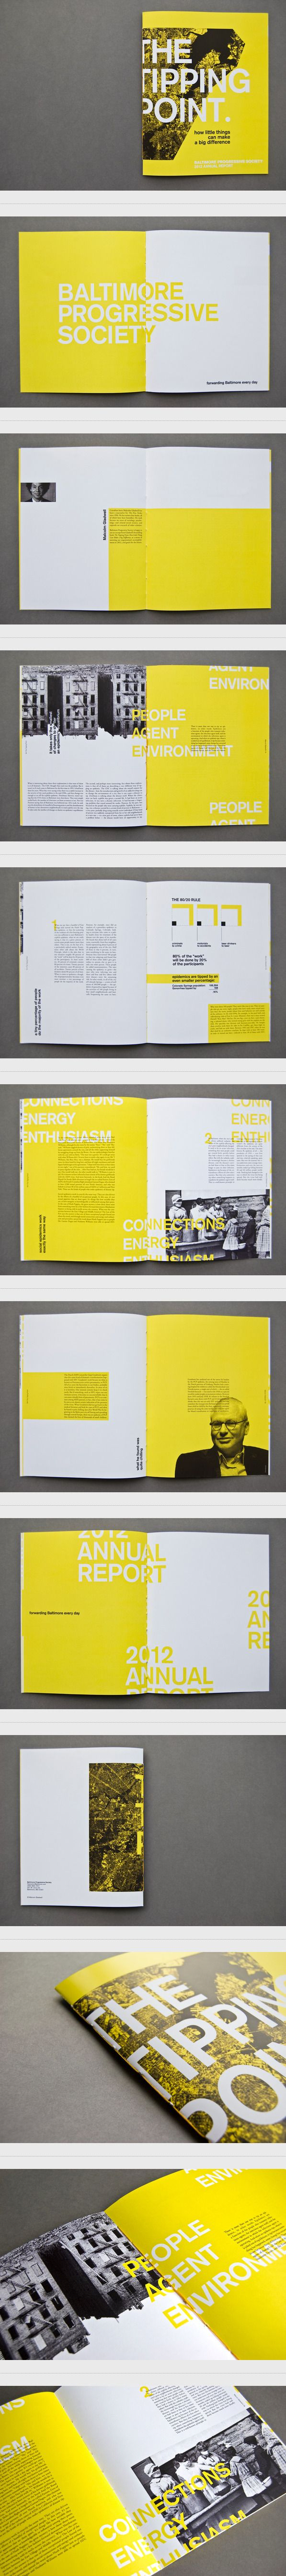 2 colores, un audaz amarillo y un negro acompañante // The Tipping Point: Annual Report